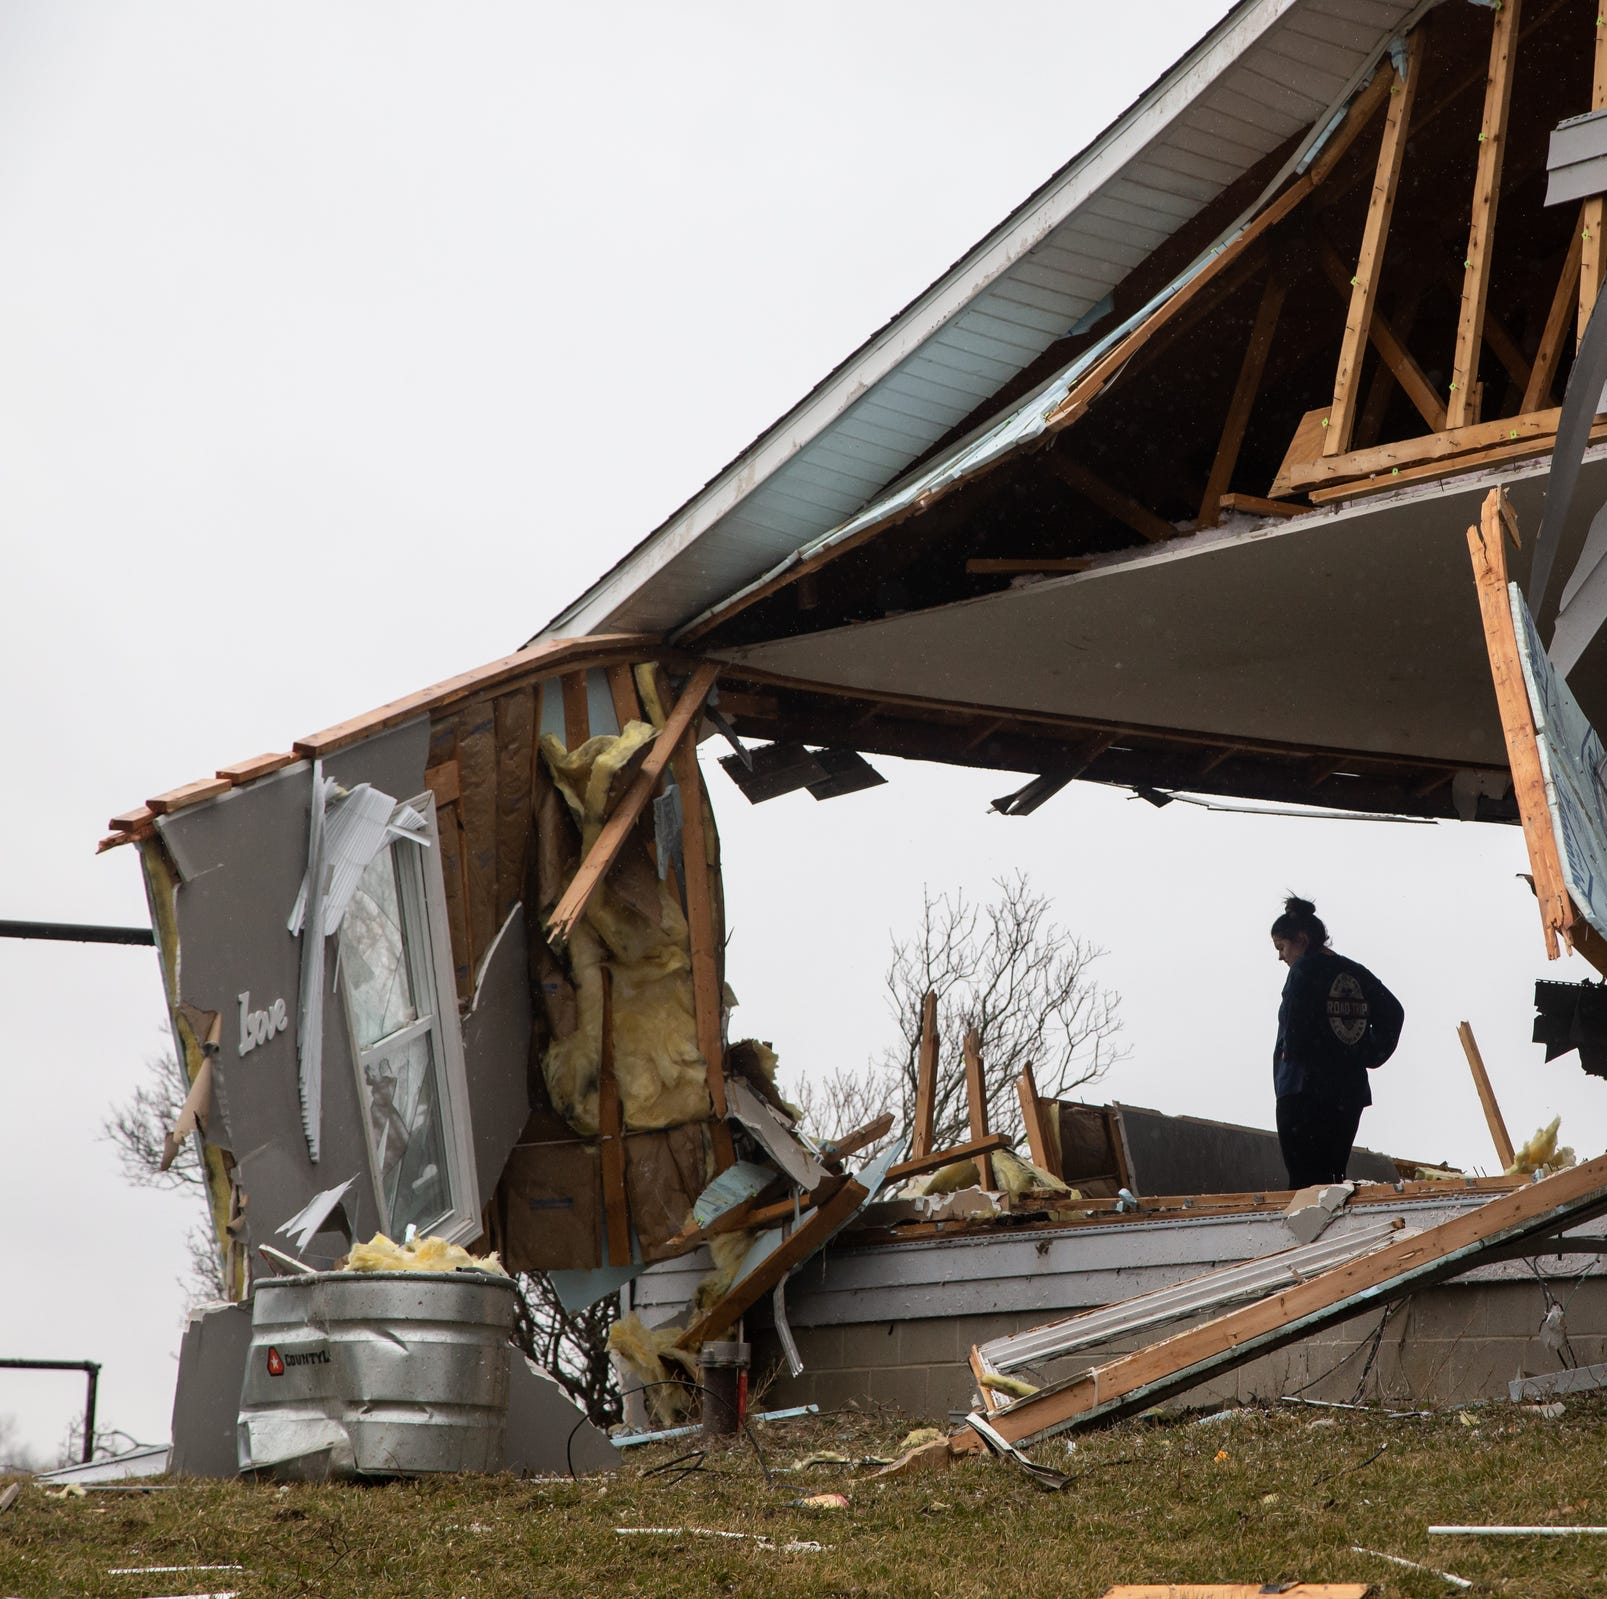 Dozens of structures damaged by mid-Michigan tornadoes as officials assess damage